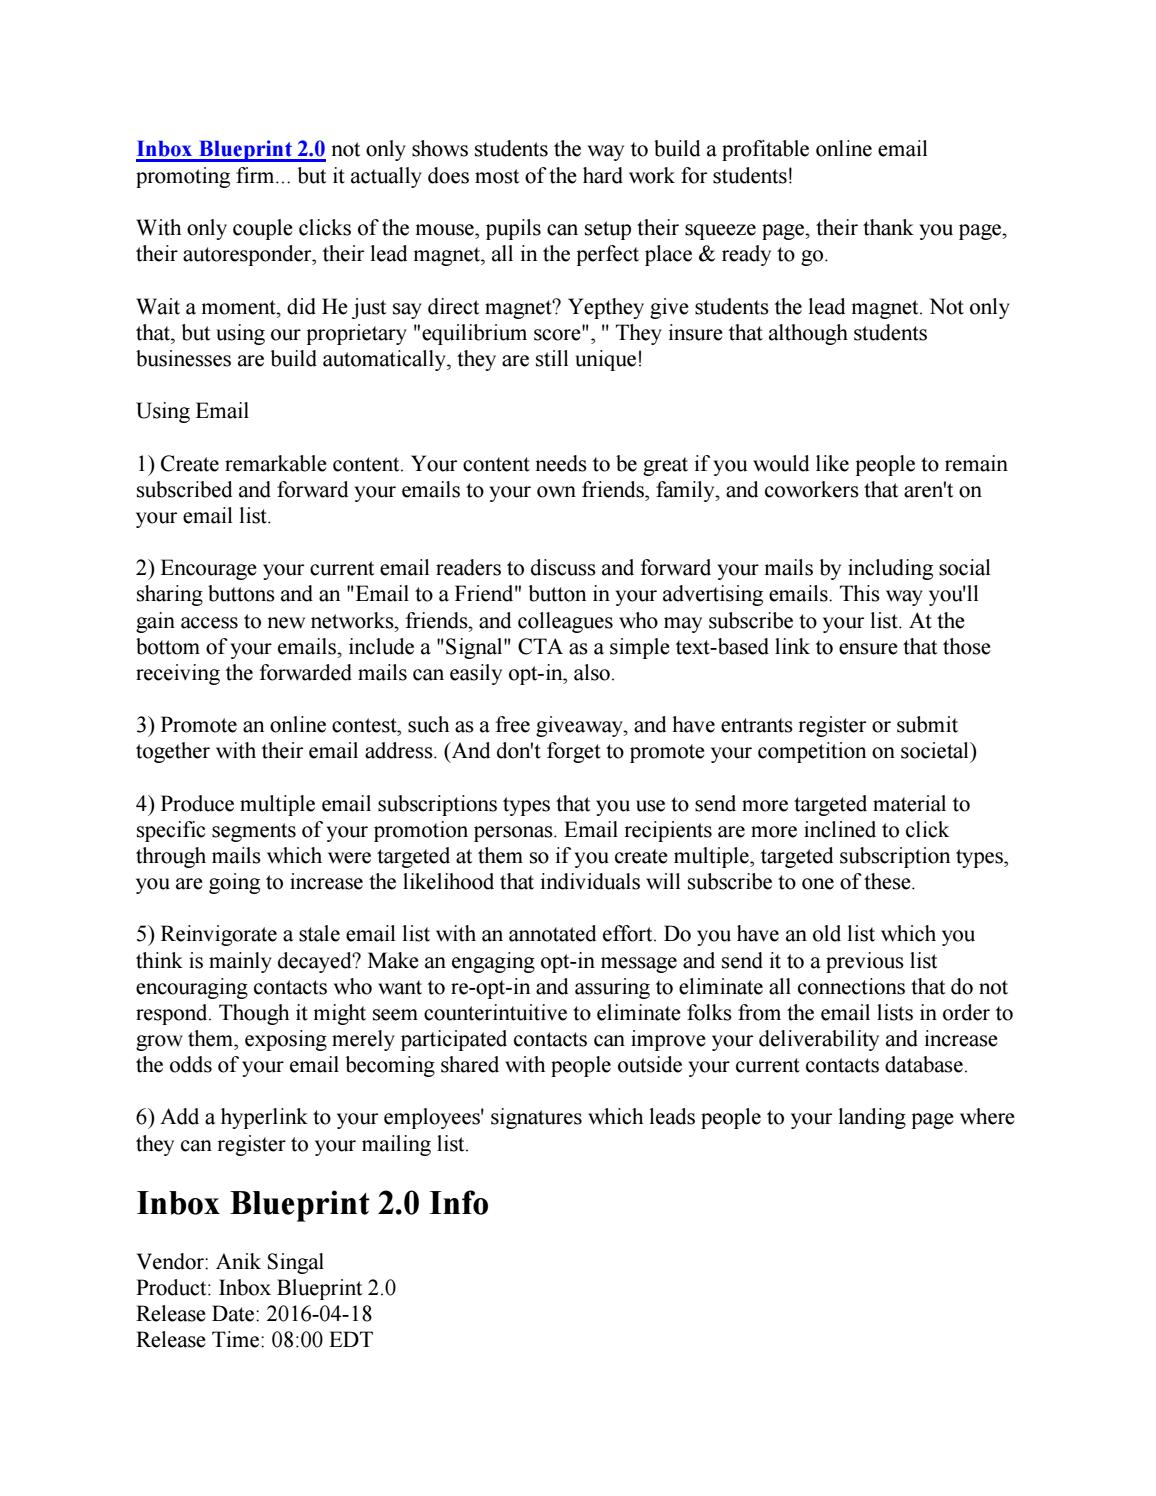 Inbox blueprint 2 0 review do we like it by john steve issuu malvernweather Image collections